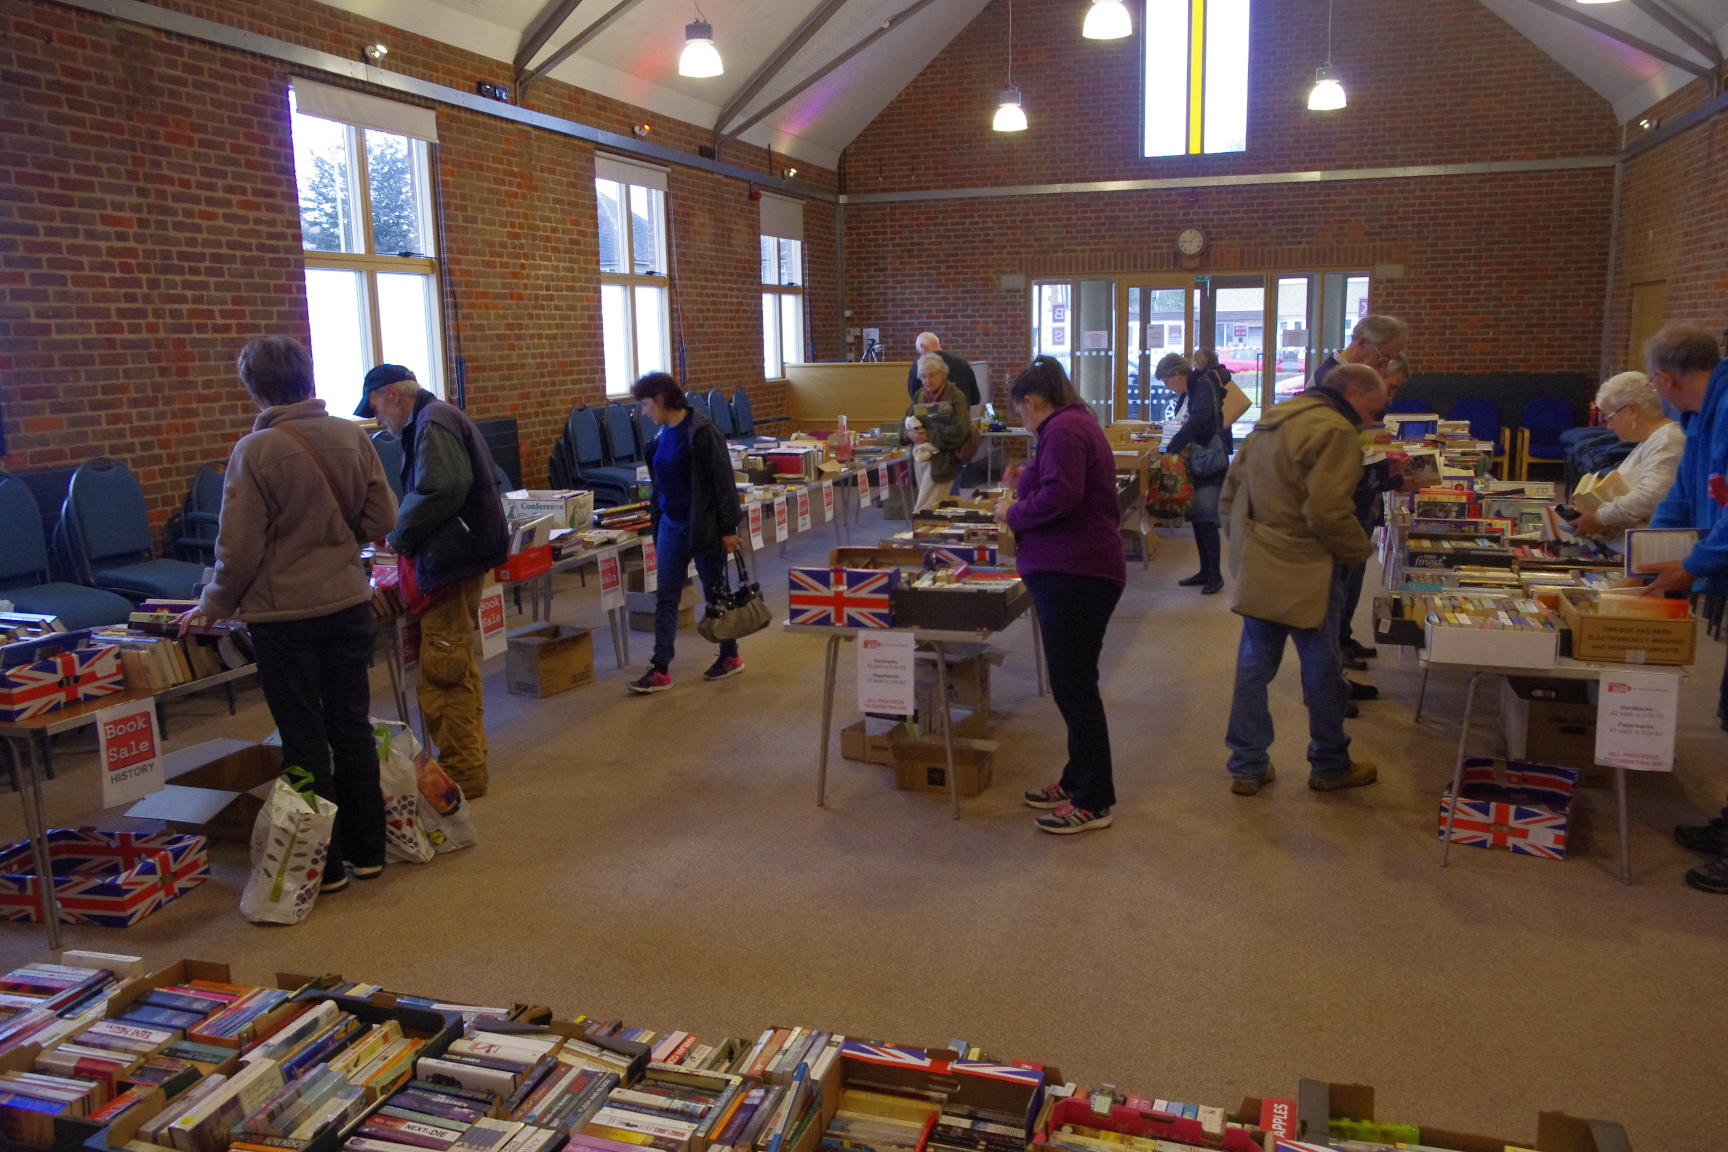 Annual Croxley Green Book Sale